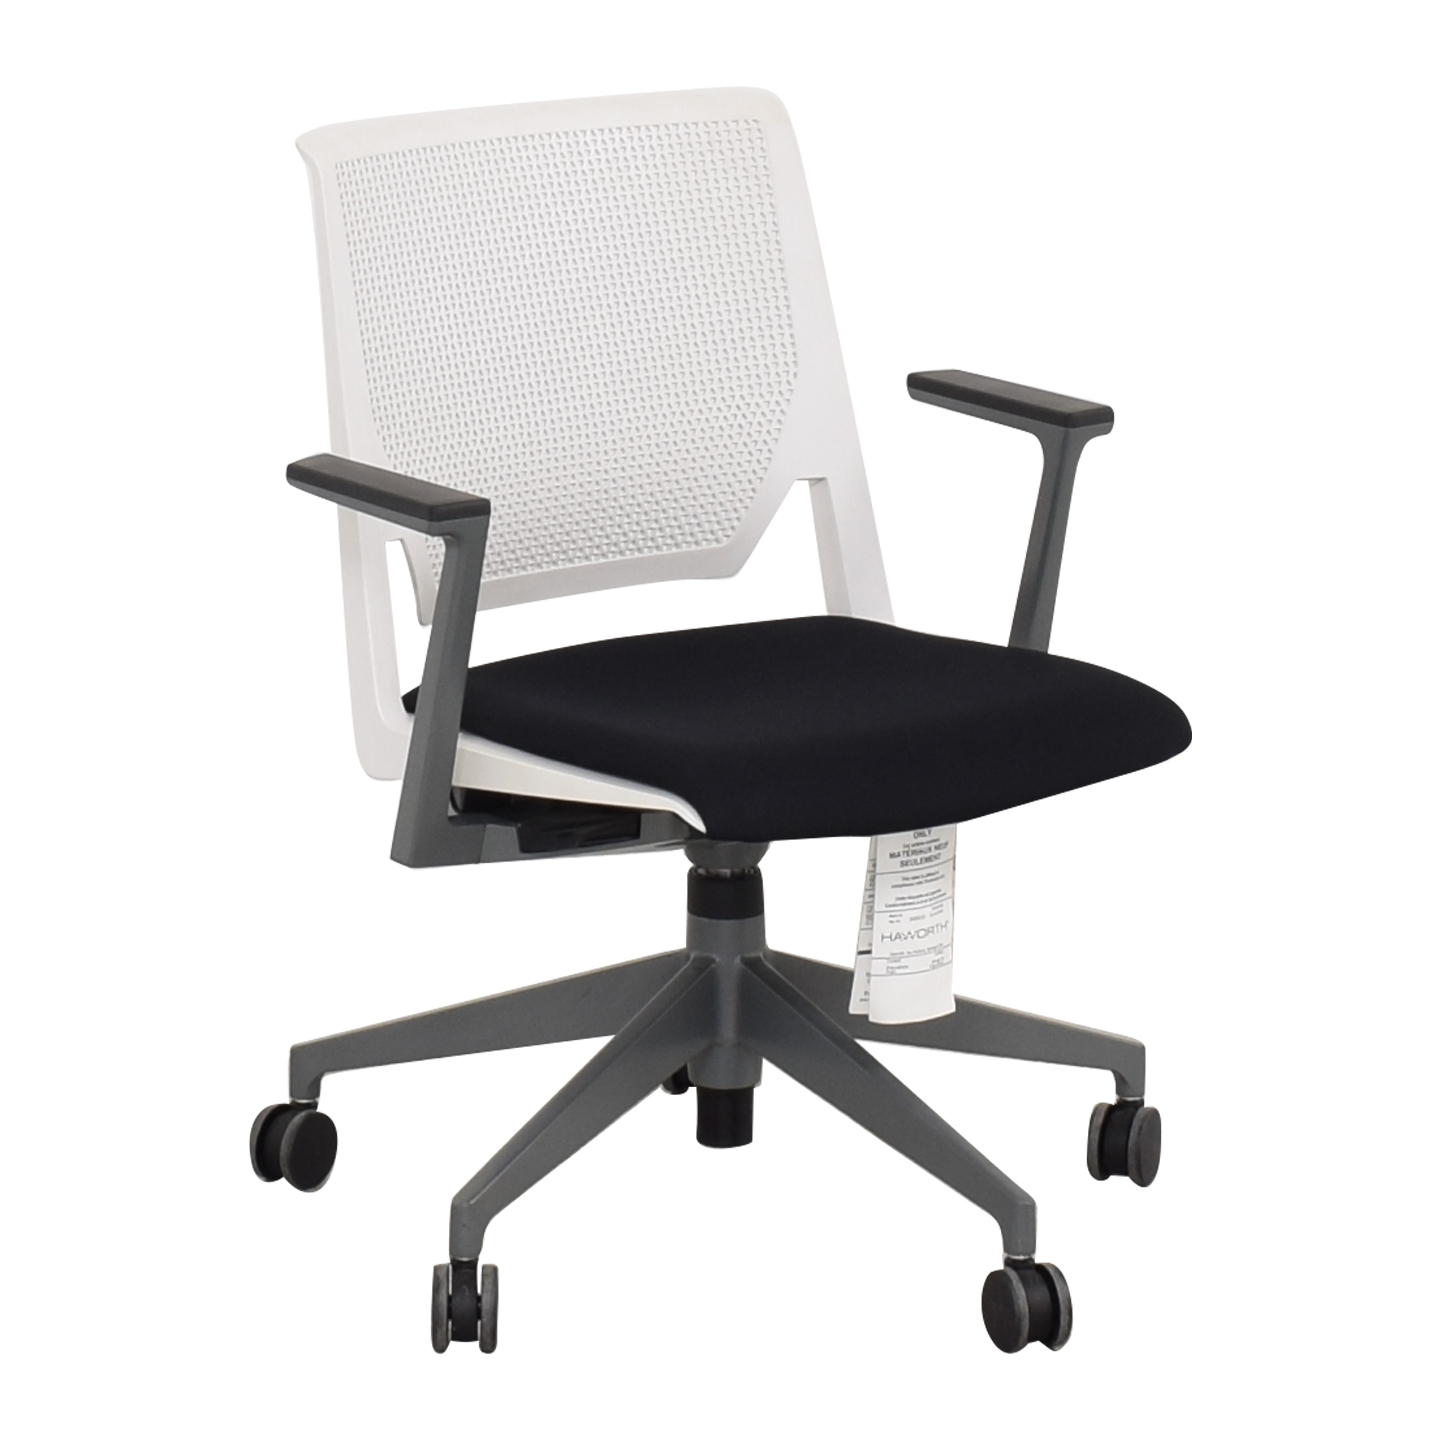 shop Haworth Haworth Very Conference Chair with Arms online